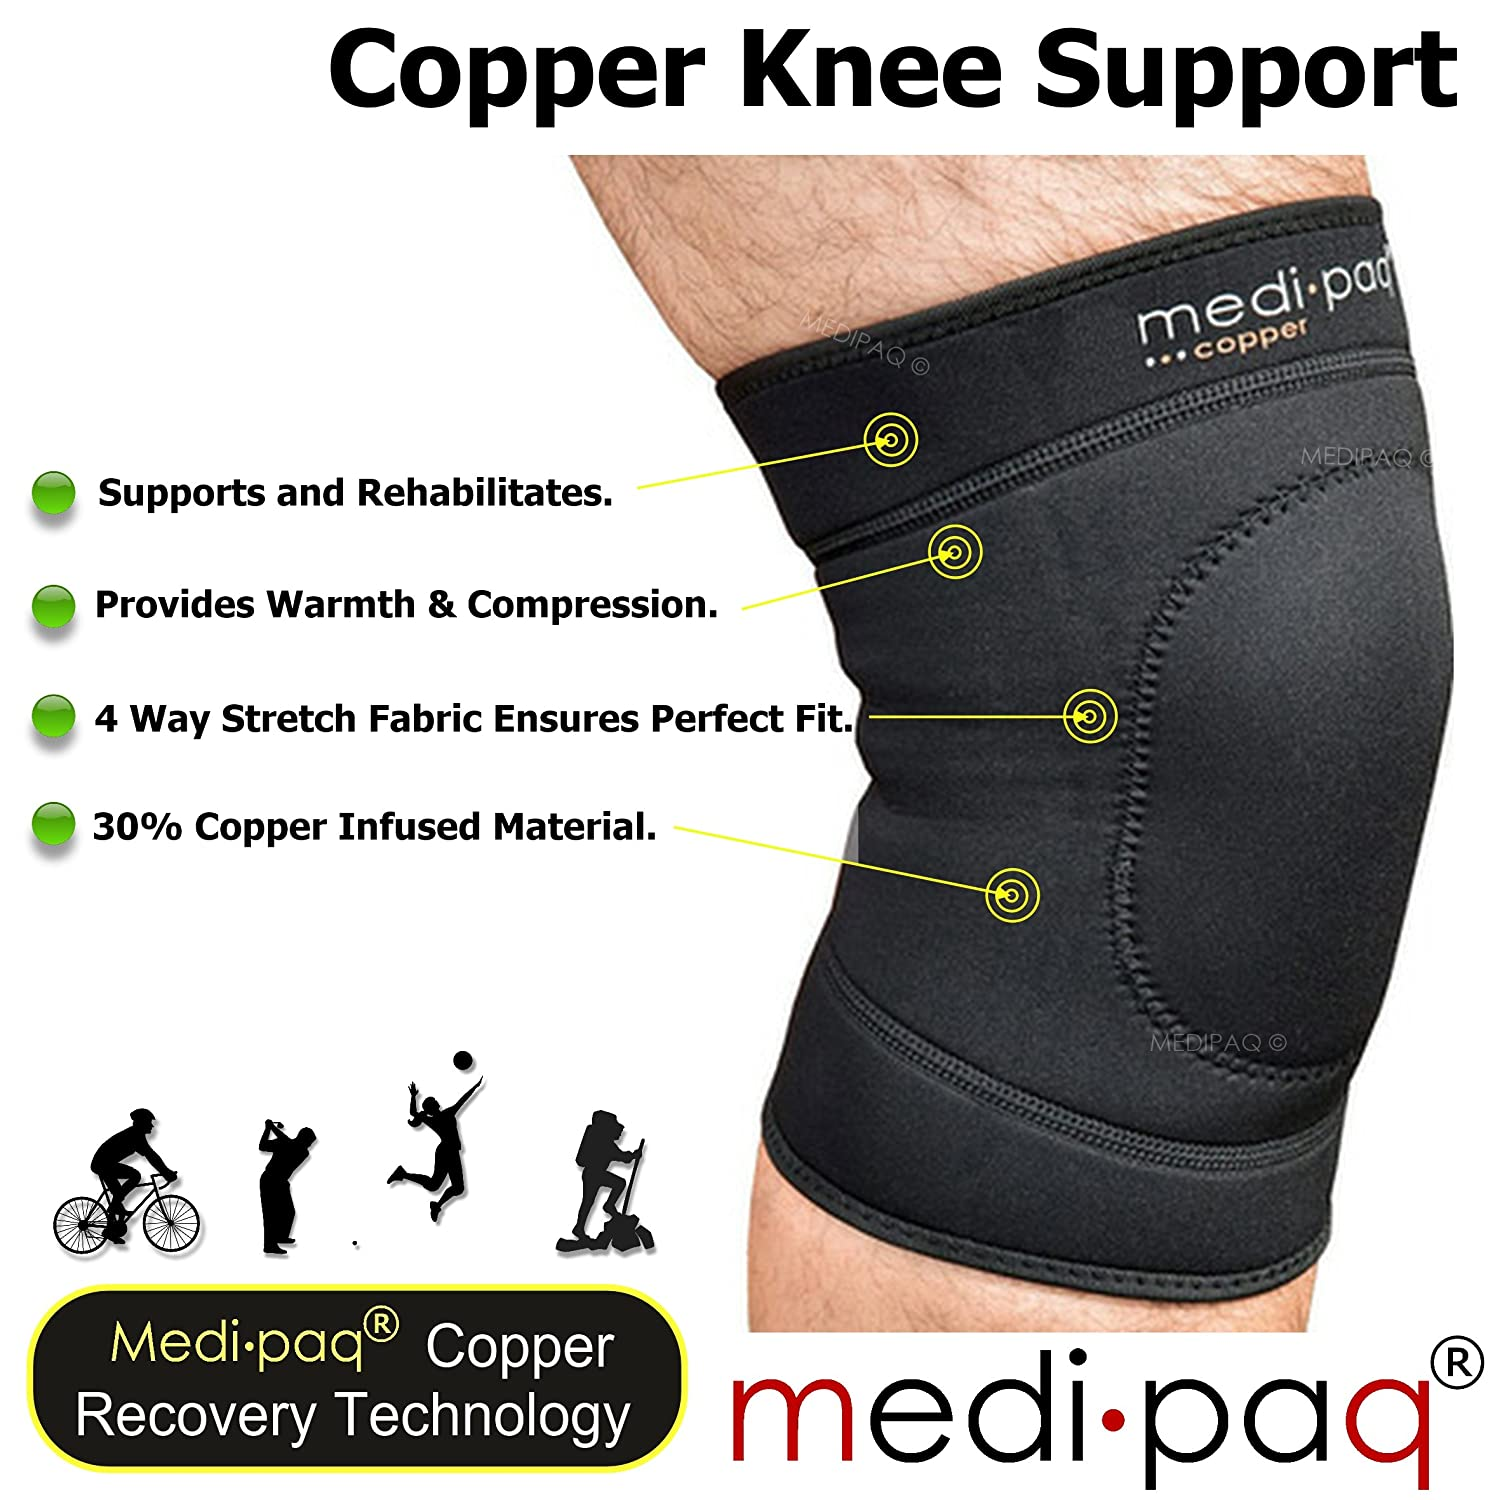 e4c20253a9 Medipaq Copper Infused Knee Compression Support (One Size Fits Most): Amazon .co.uk: Health & Personal Care